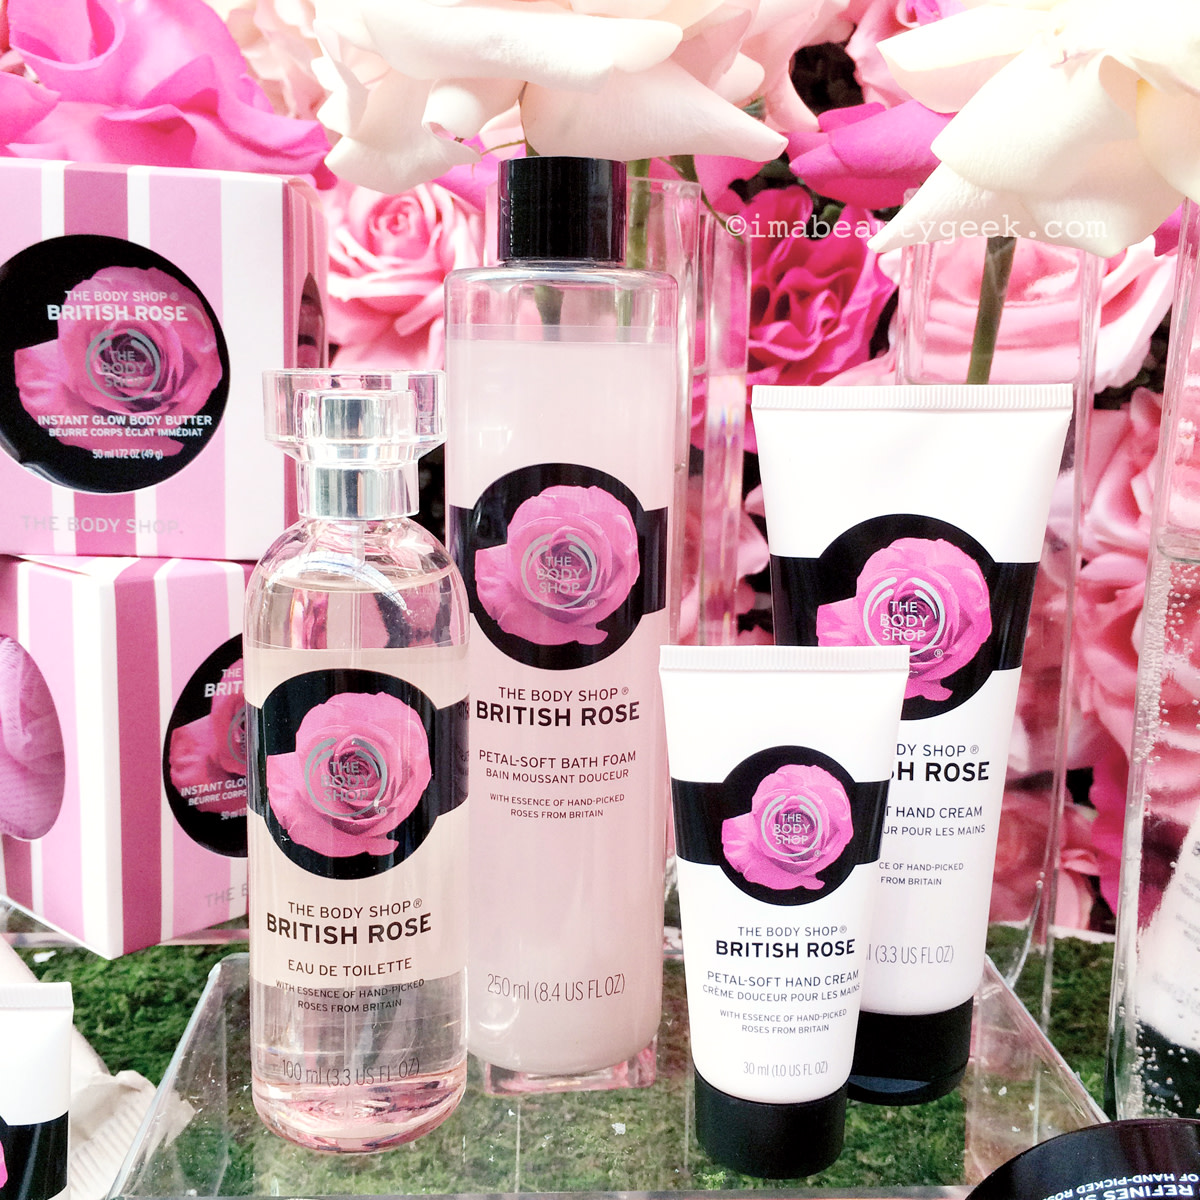 The Body Shop British Rose_items from the collection